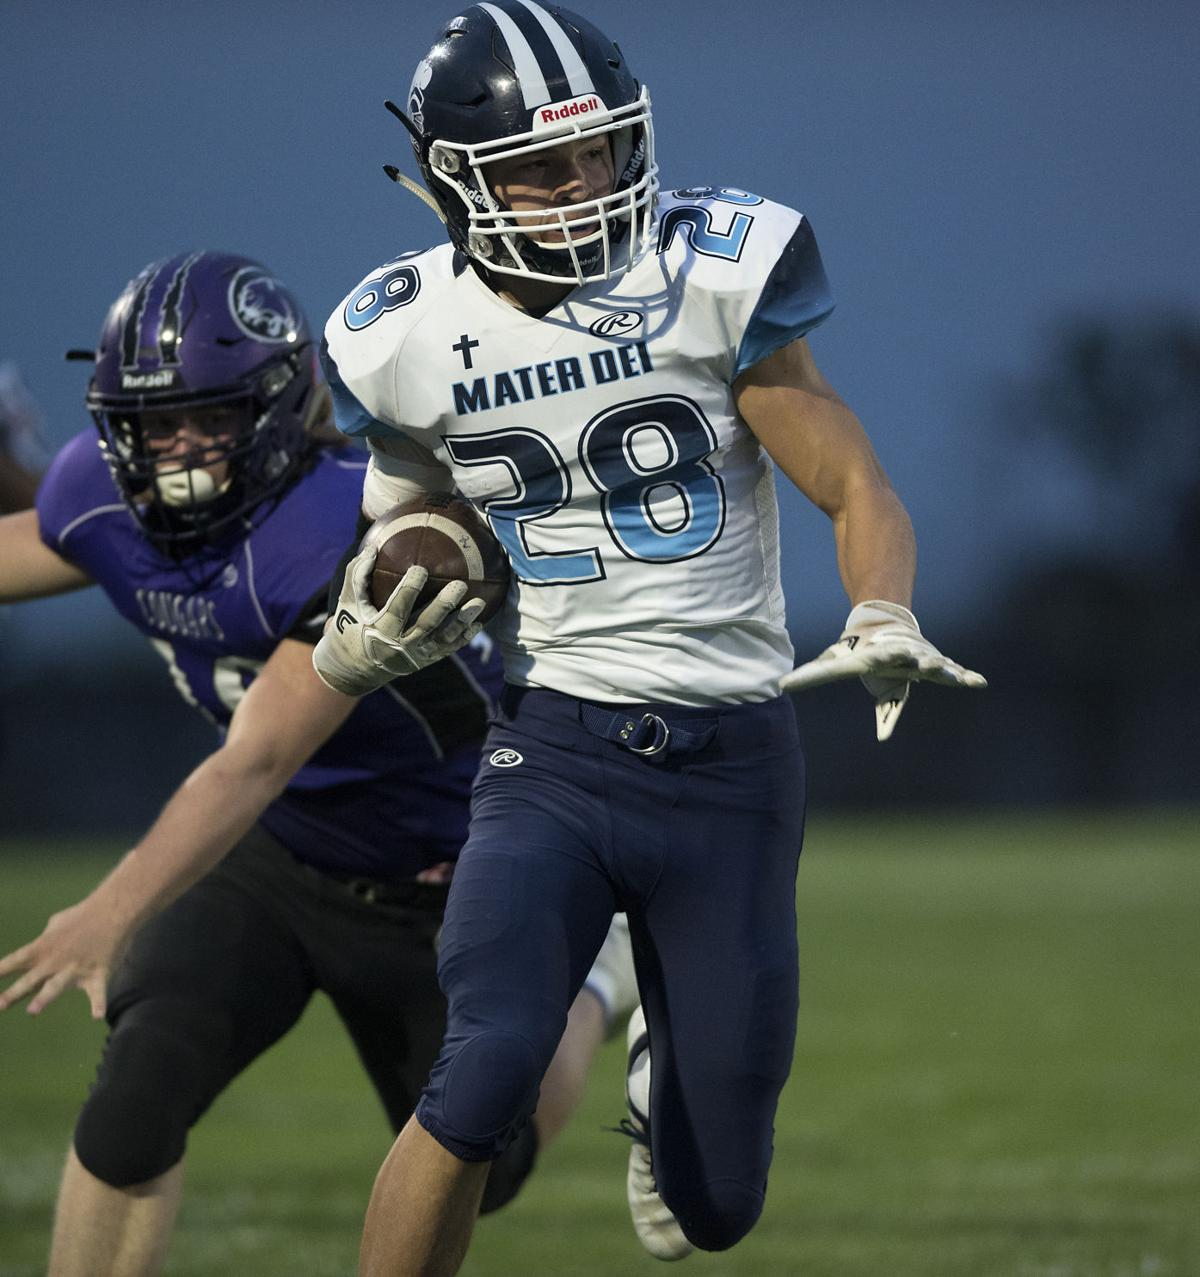 Mater Dei Stays Perfect With Milk Bowl Win Over Breese Central